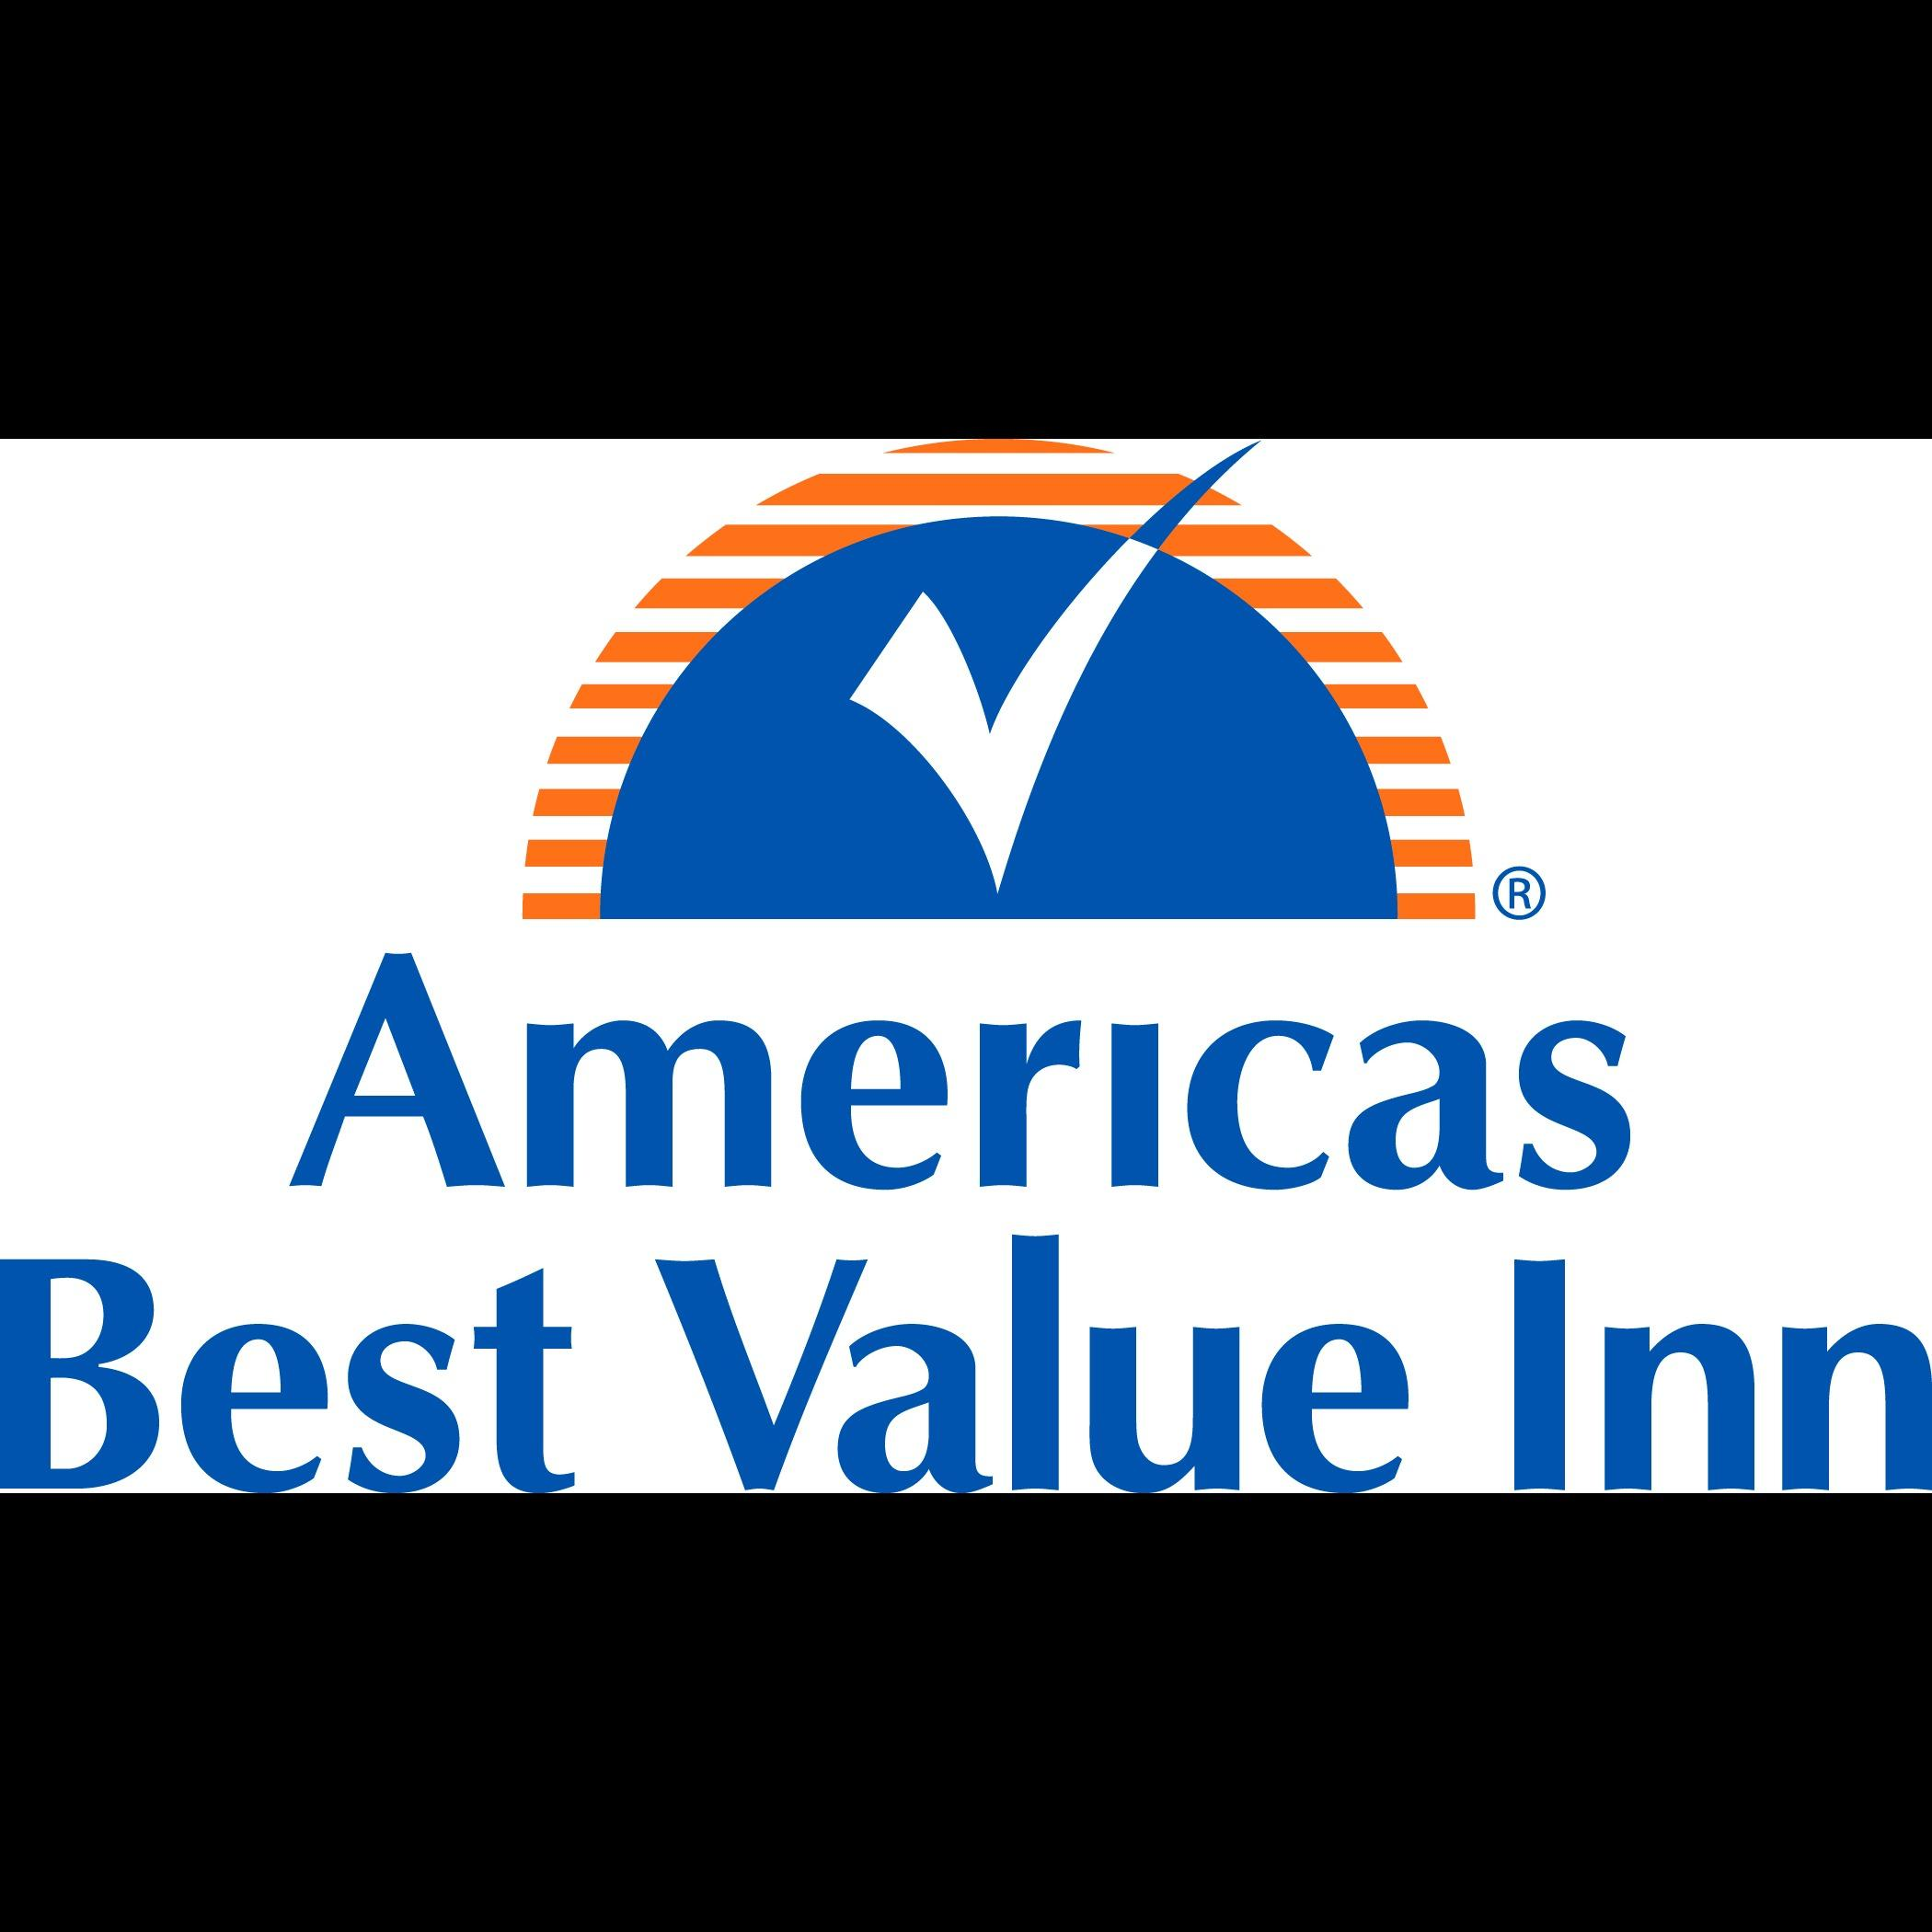 Americas Best Value Inn & Suites - Stockbridge/Atlanta - Stockbridge, GA - Hotels & Motels